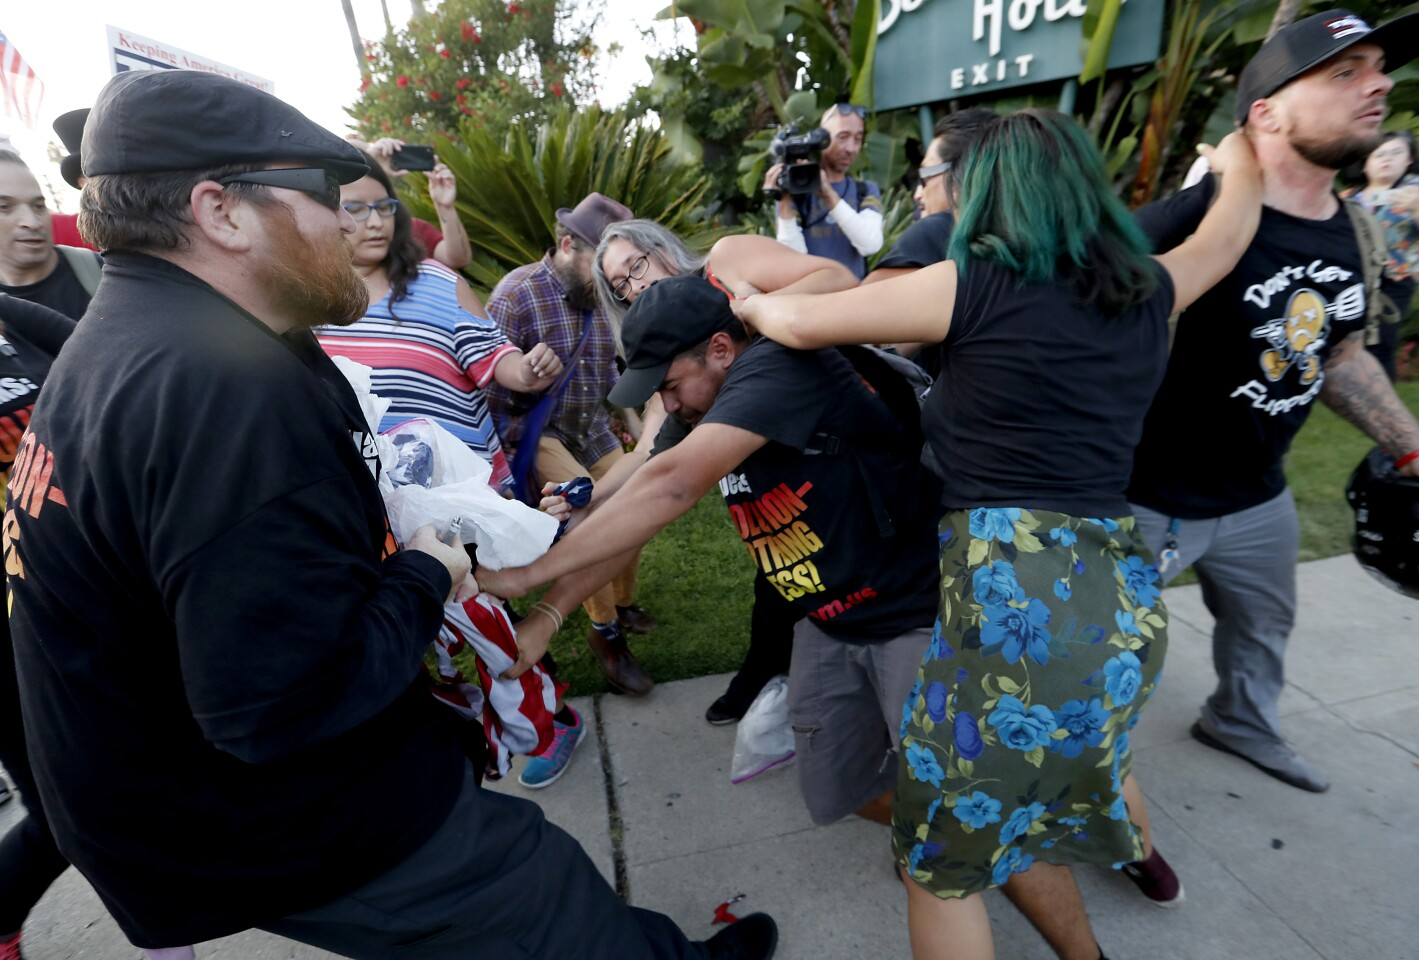 Trump visit to California draws both supporters and protesters